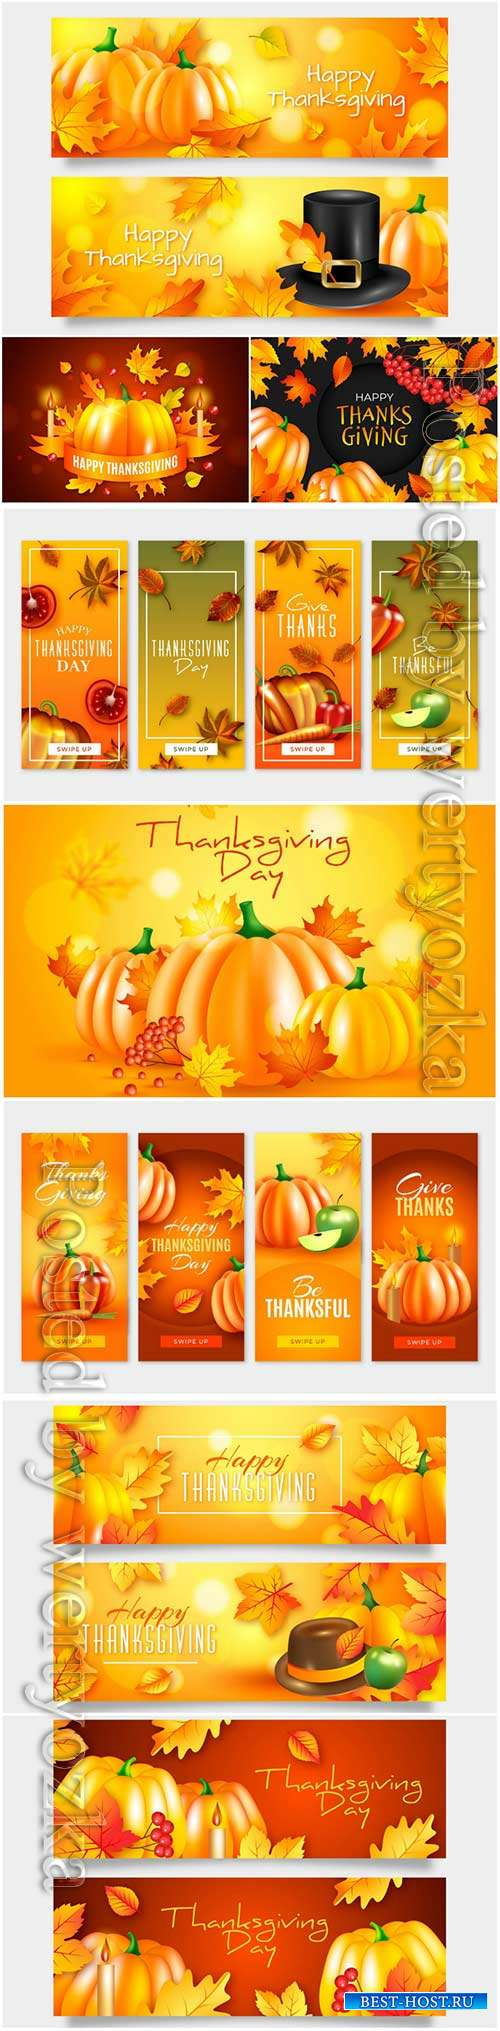 Thanksgiving day banner design